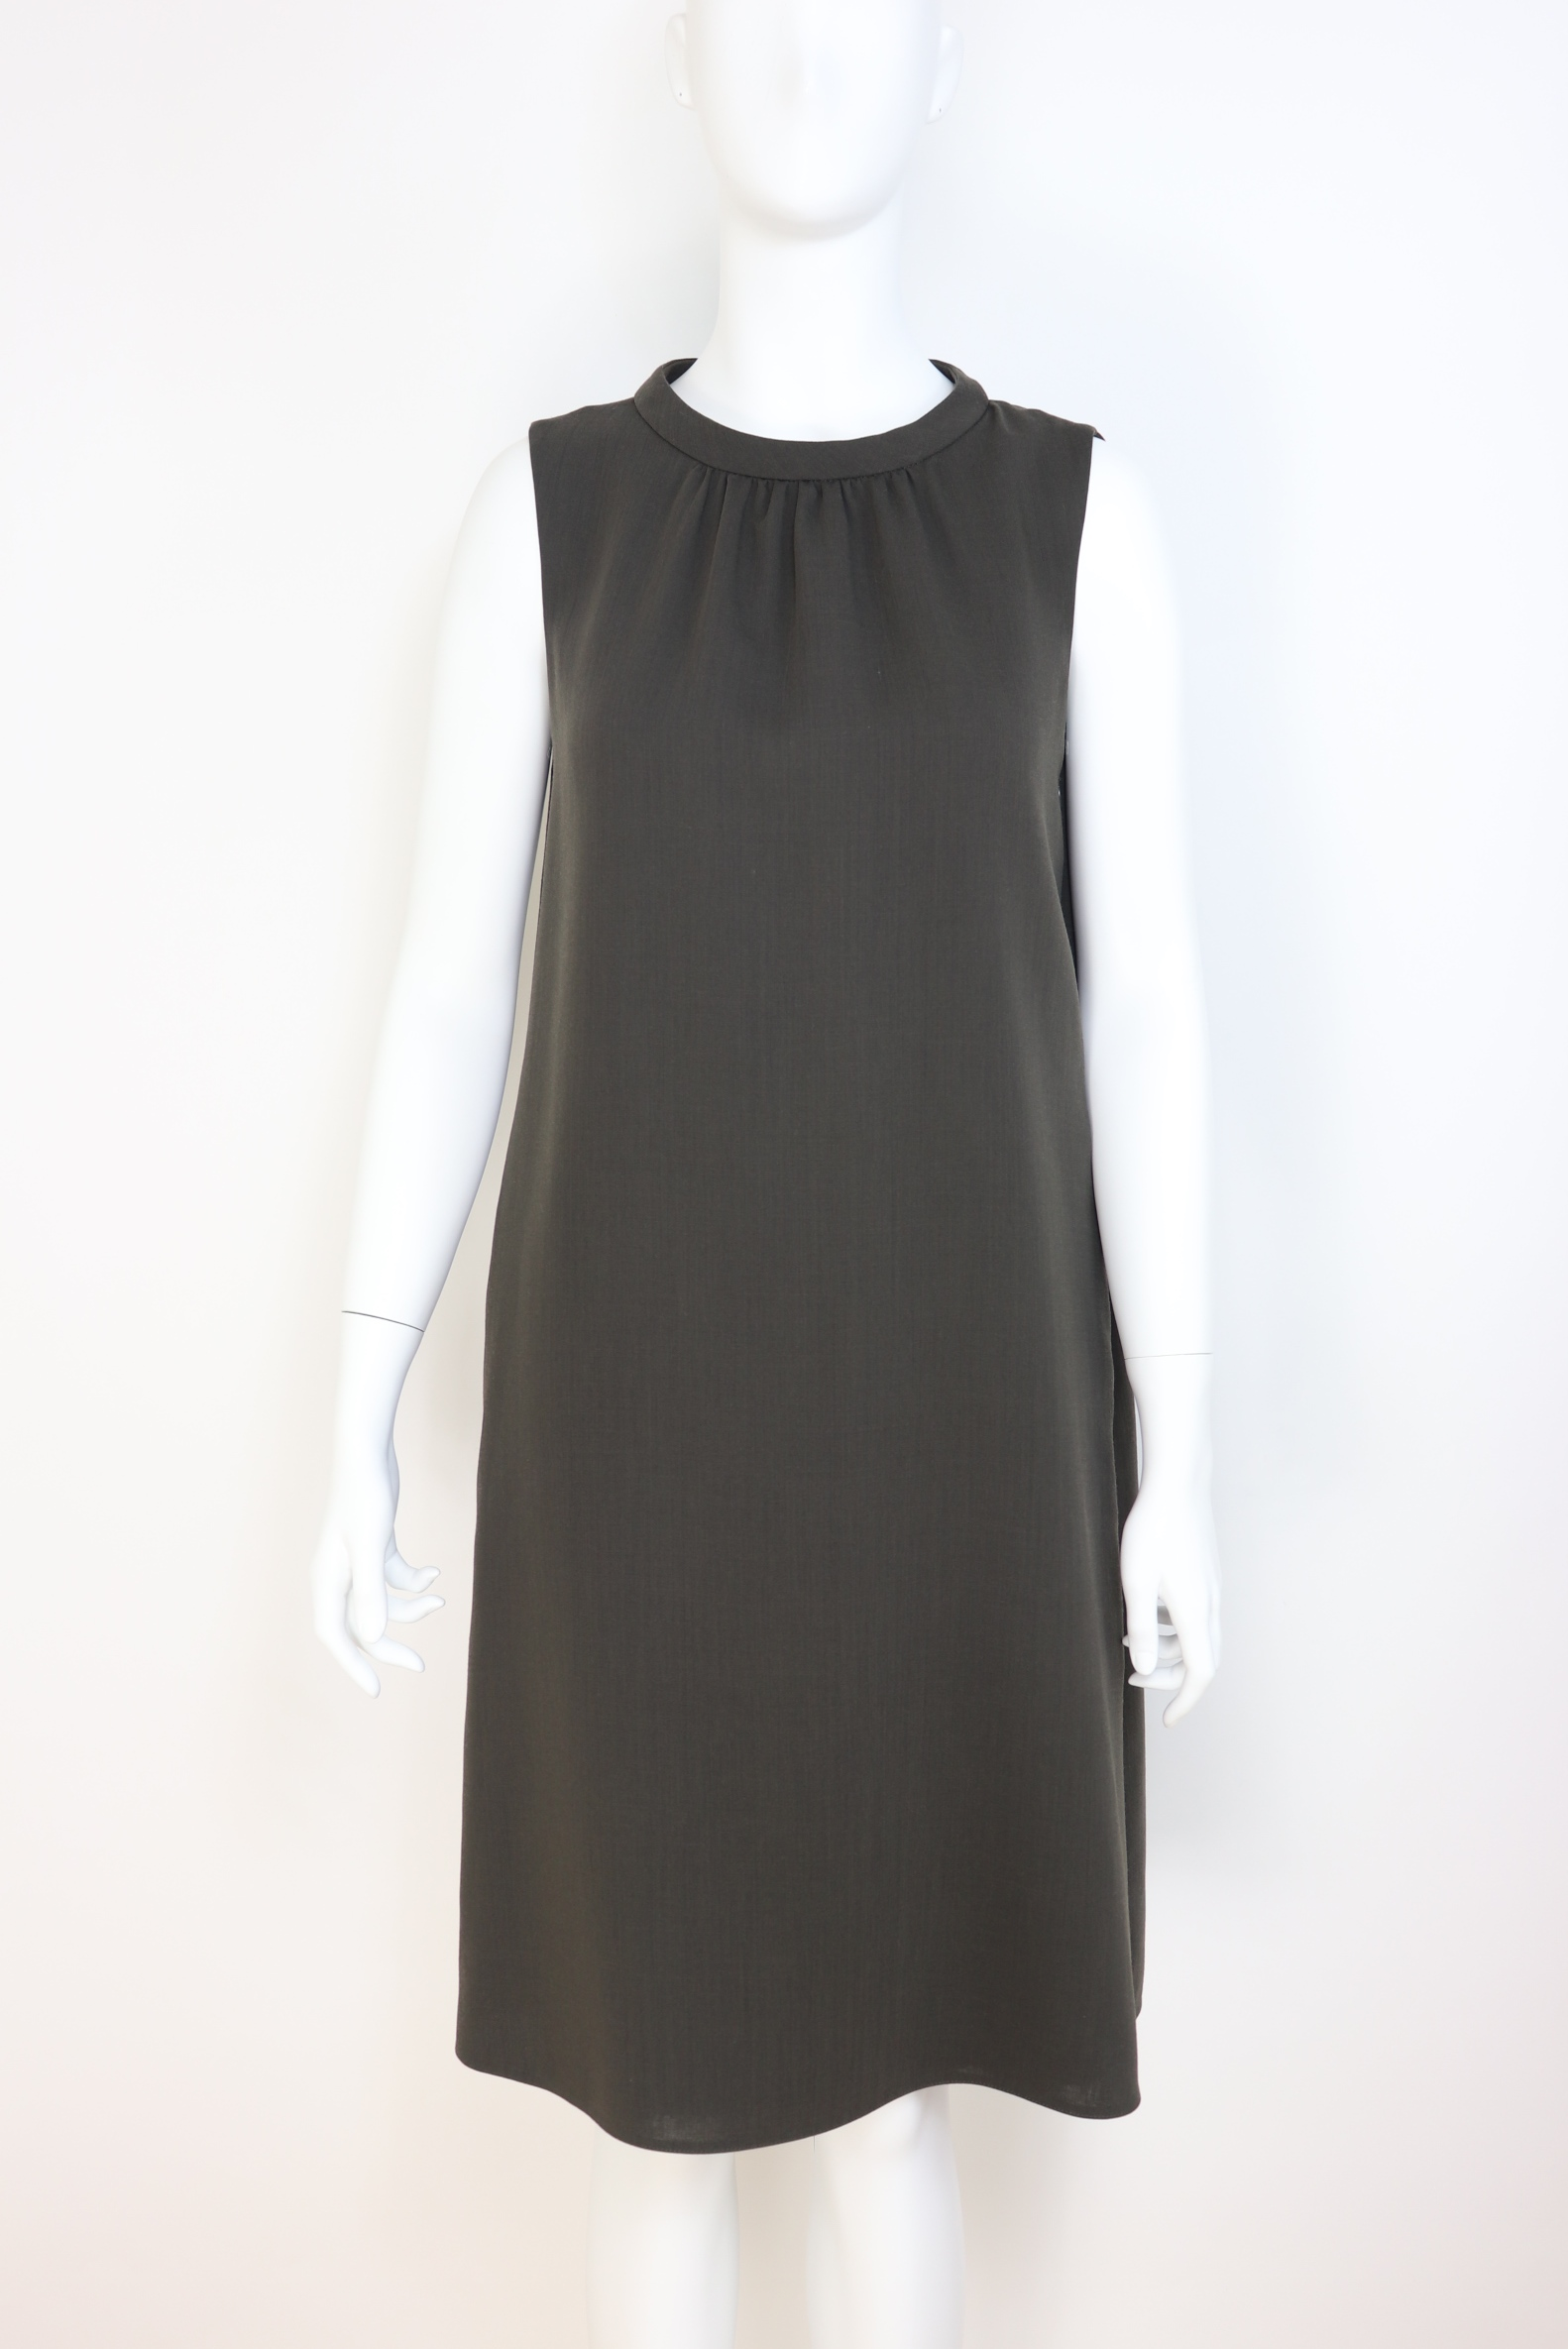 FOXEY BOUTIQUE(フォクシー) Montaigne  モンテーニュドレス ワンピース 35300